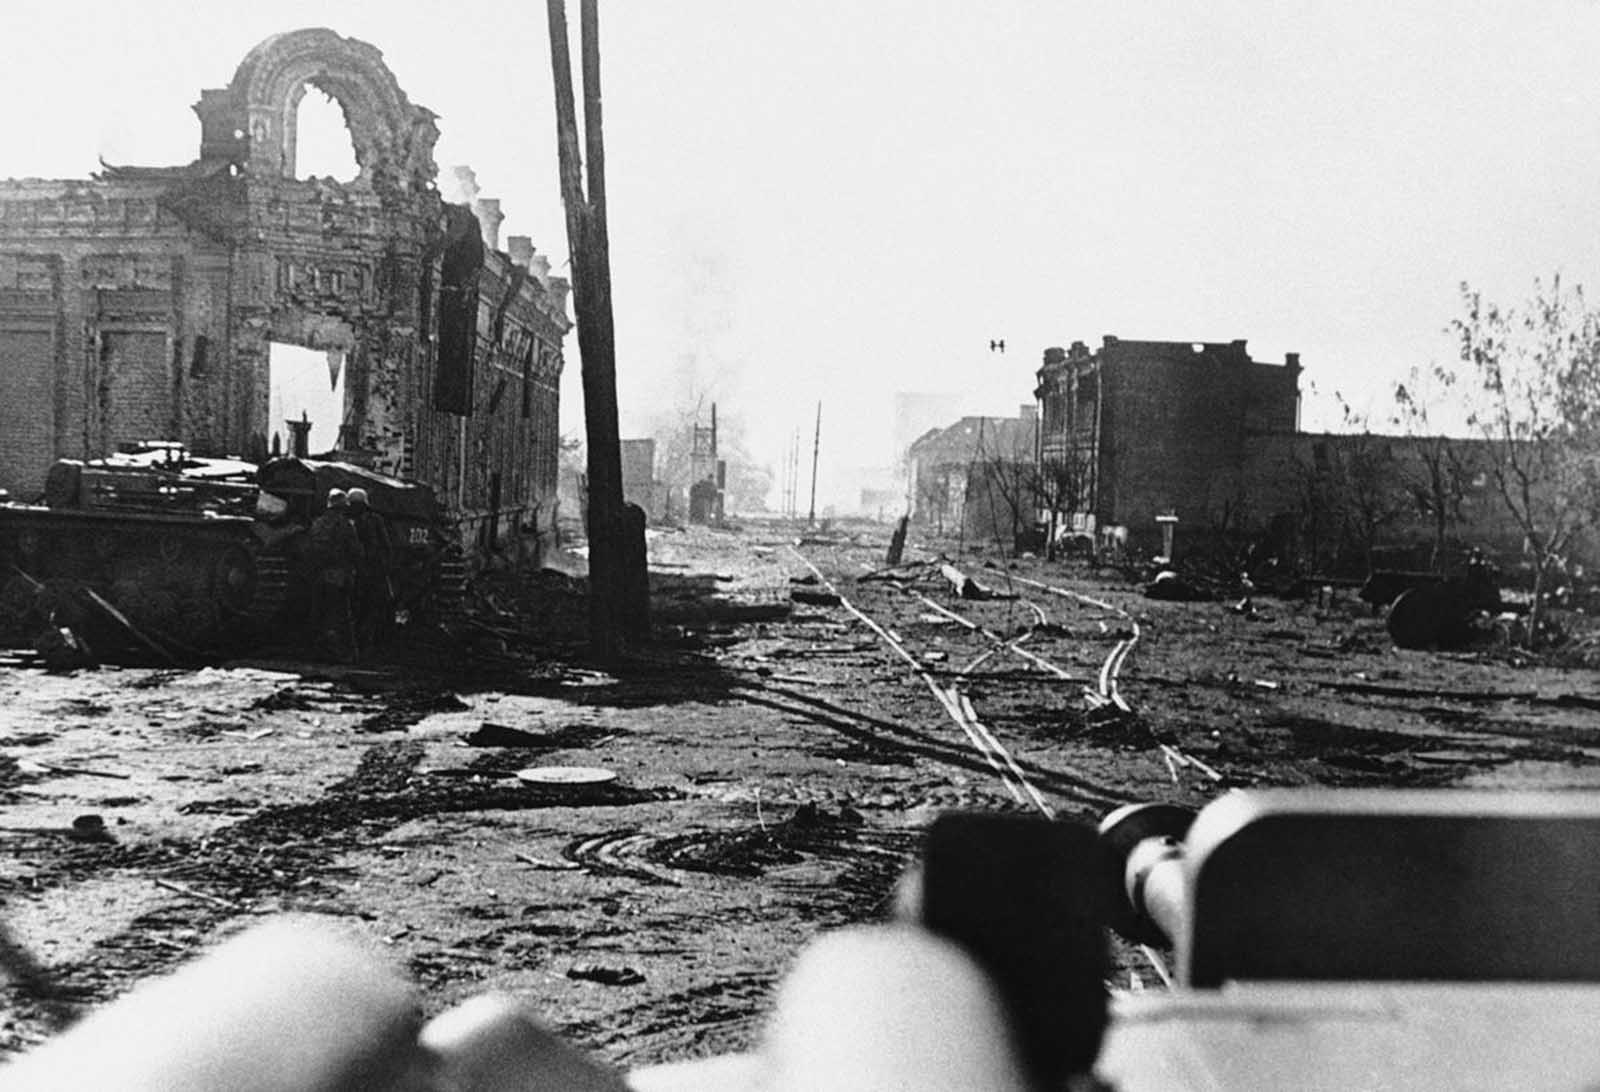 Ruins of part of the city of Stalingrad, on November 5, 1942, following huge battles, with wrecked shells of buildings on either side.